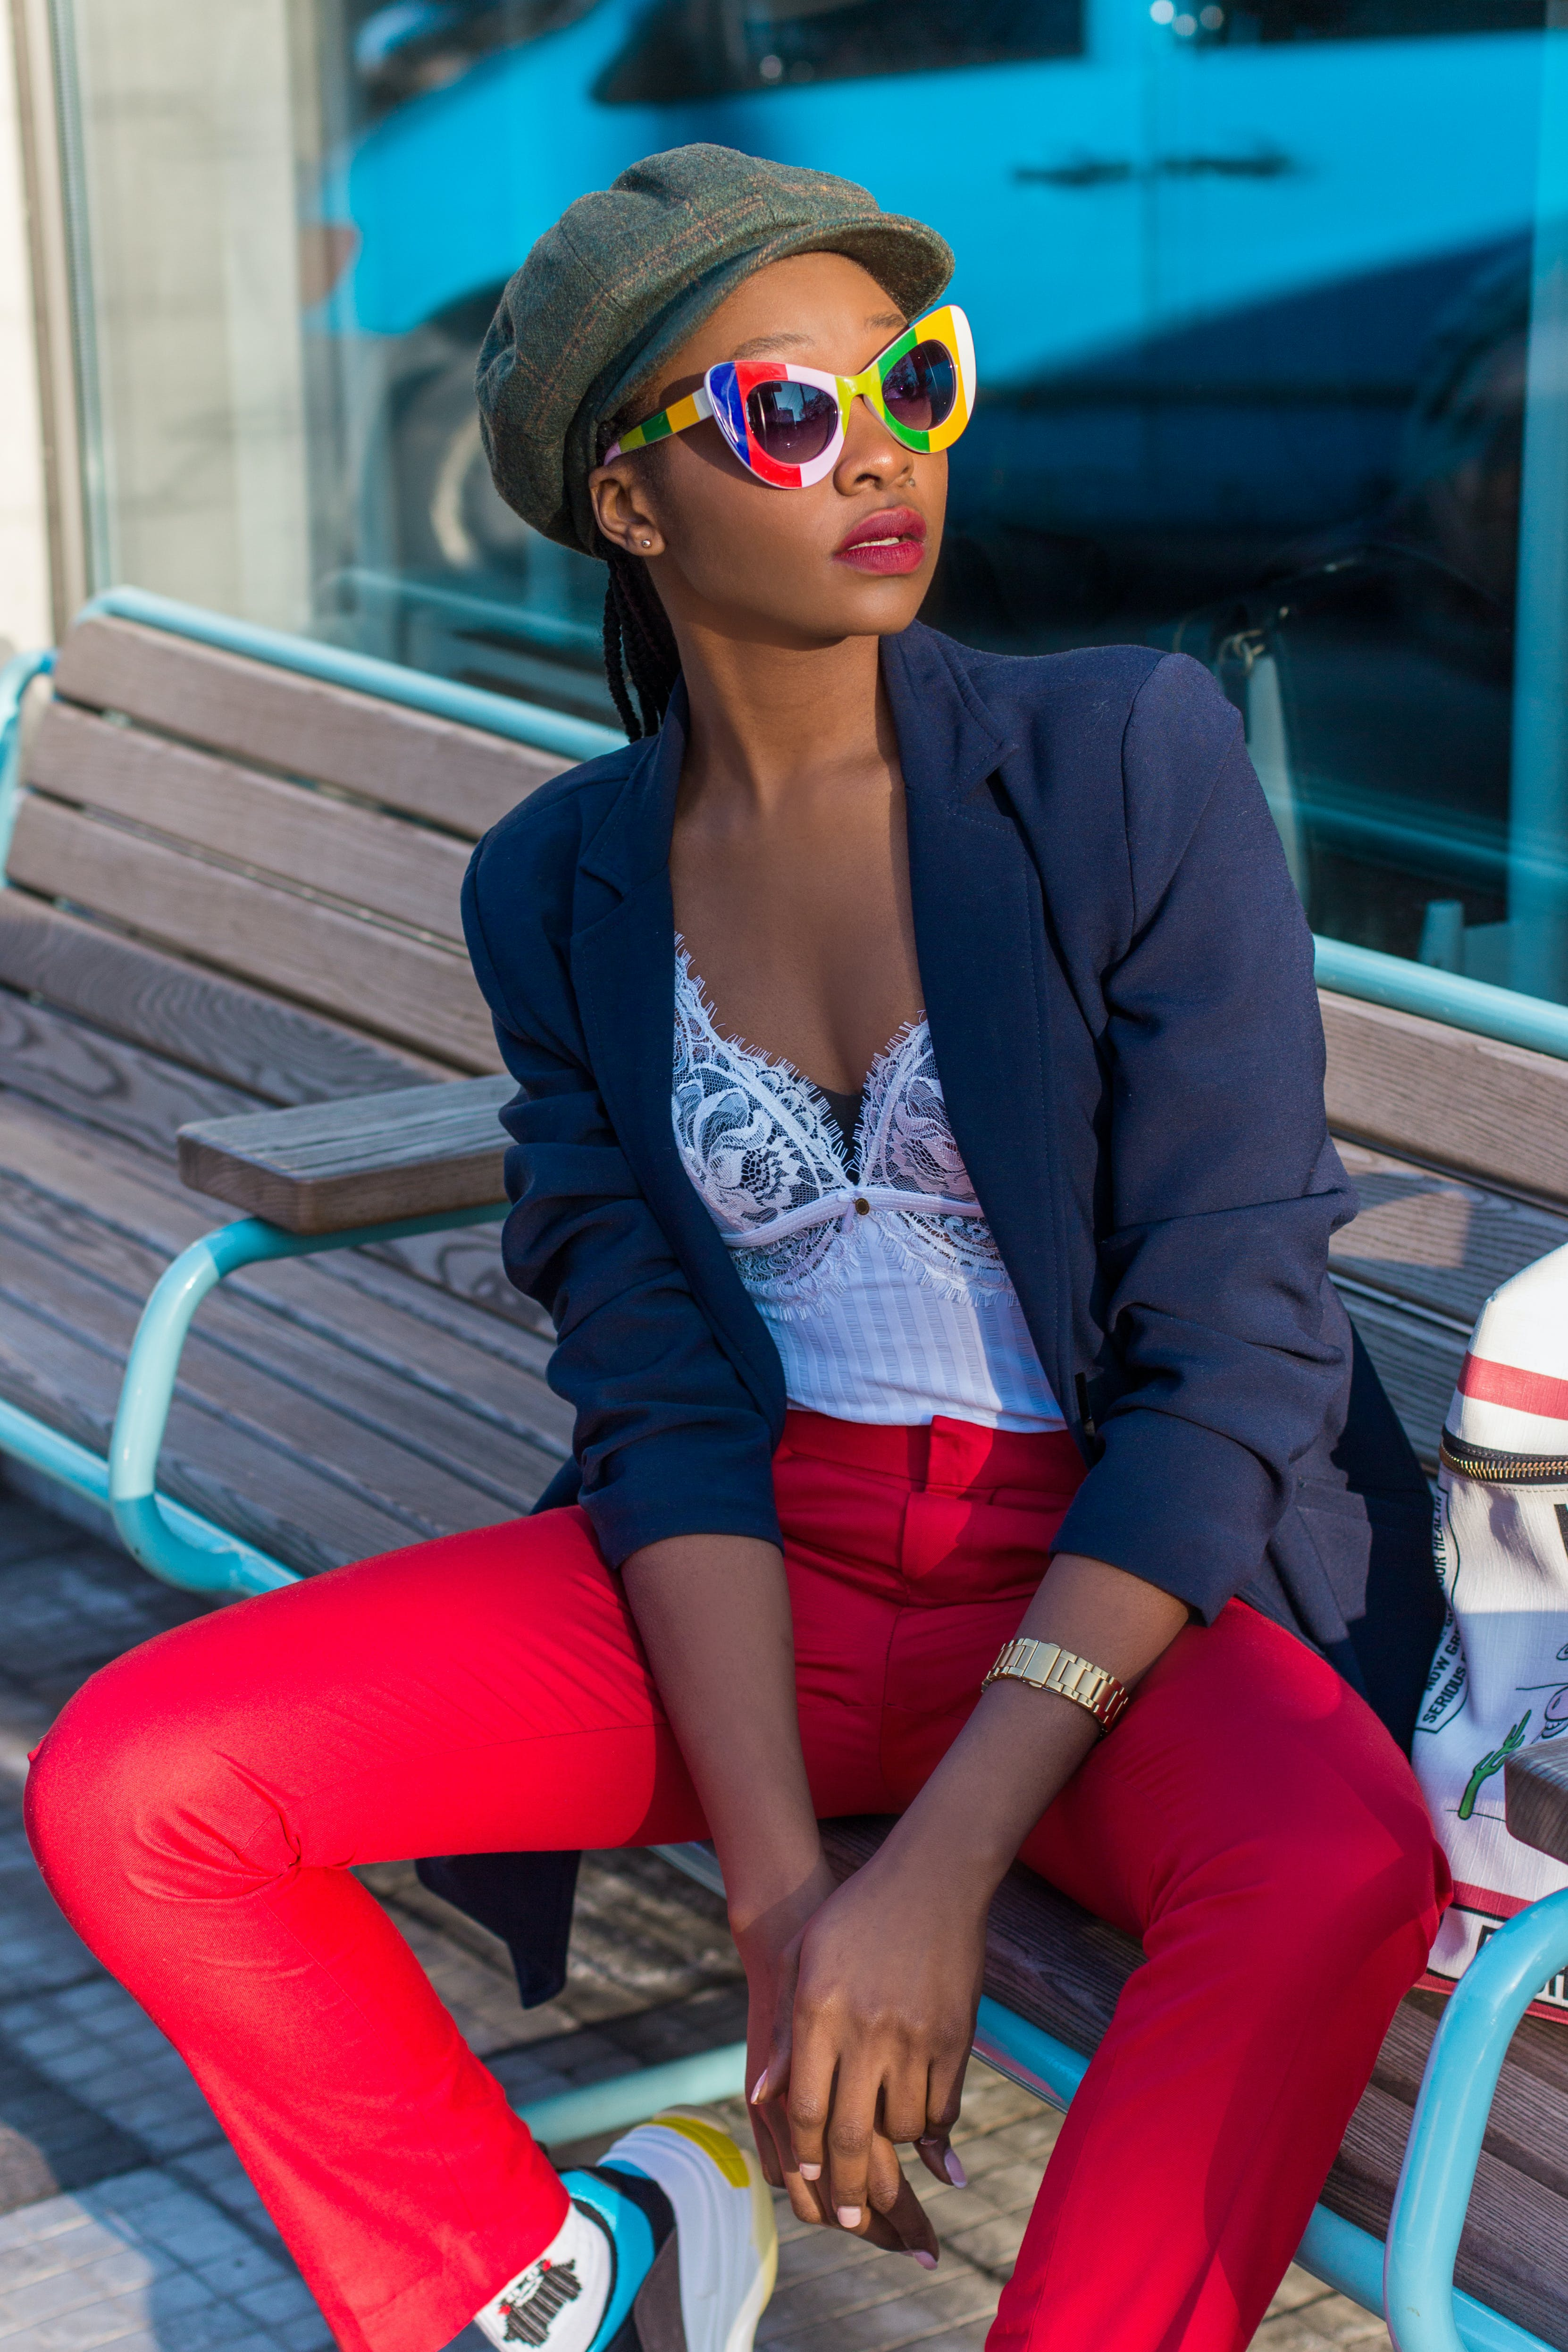 Free stock photo of sunny, red, sunglasses, sitting